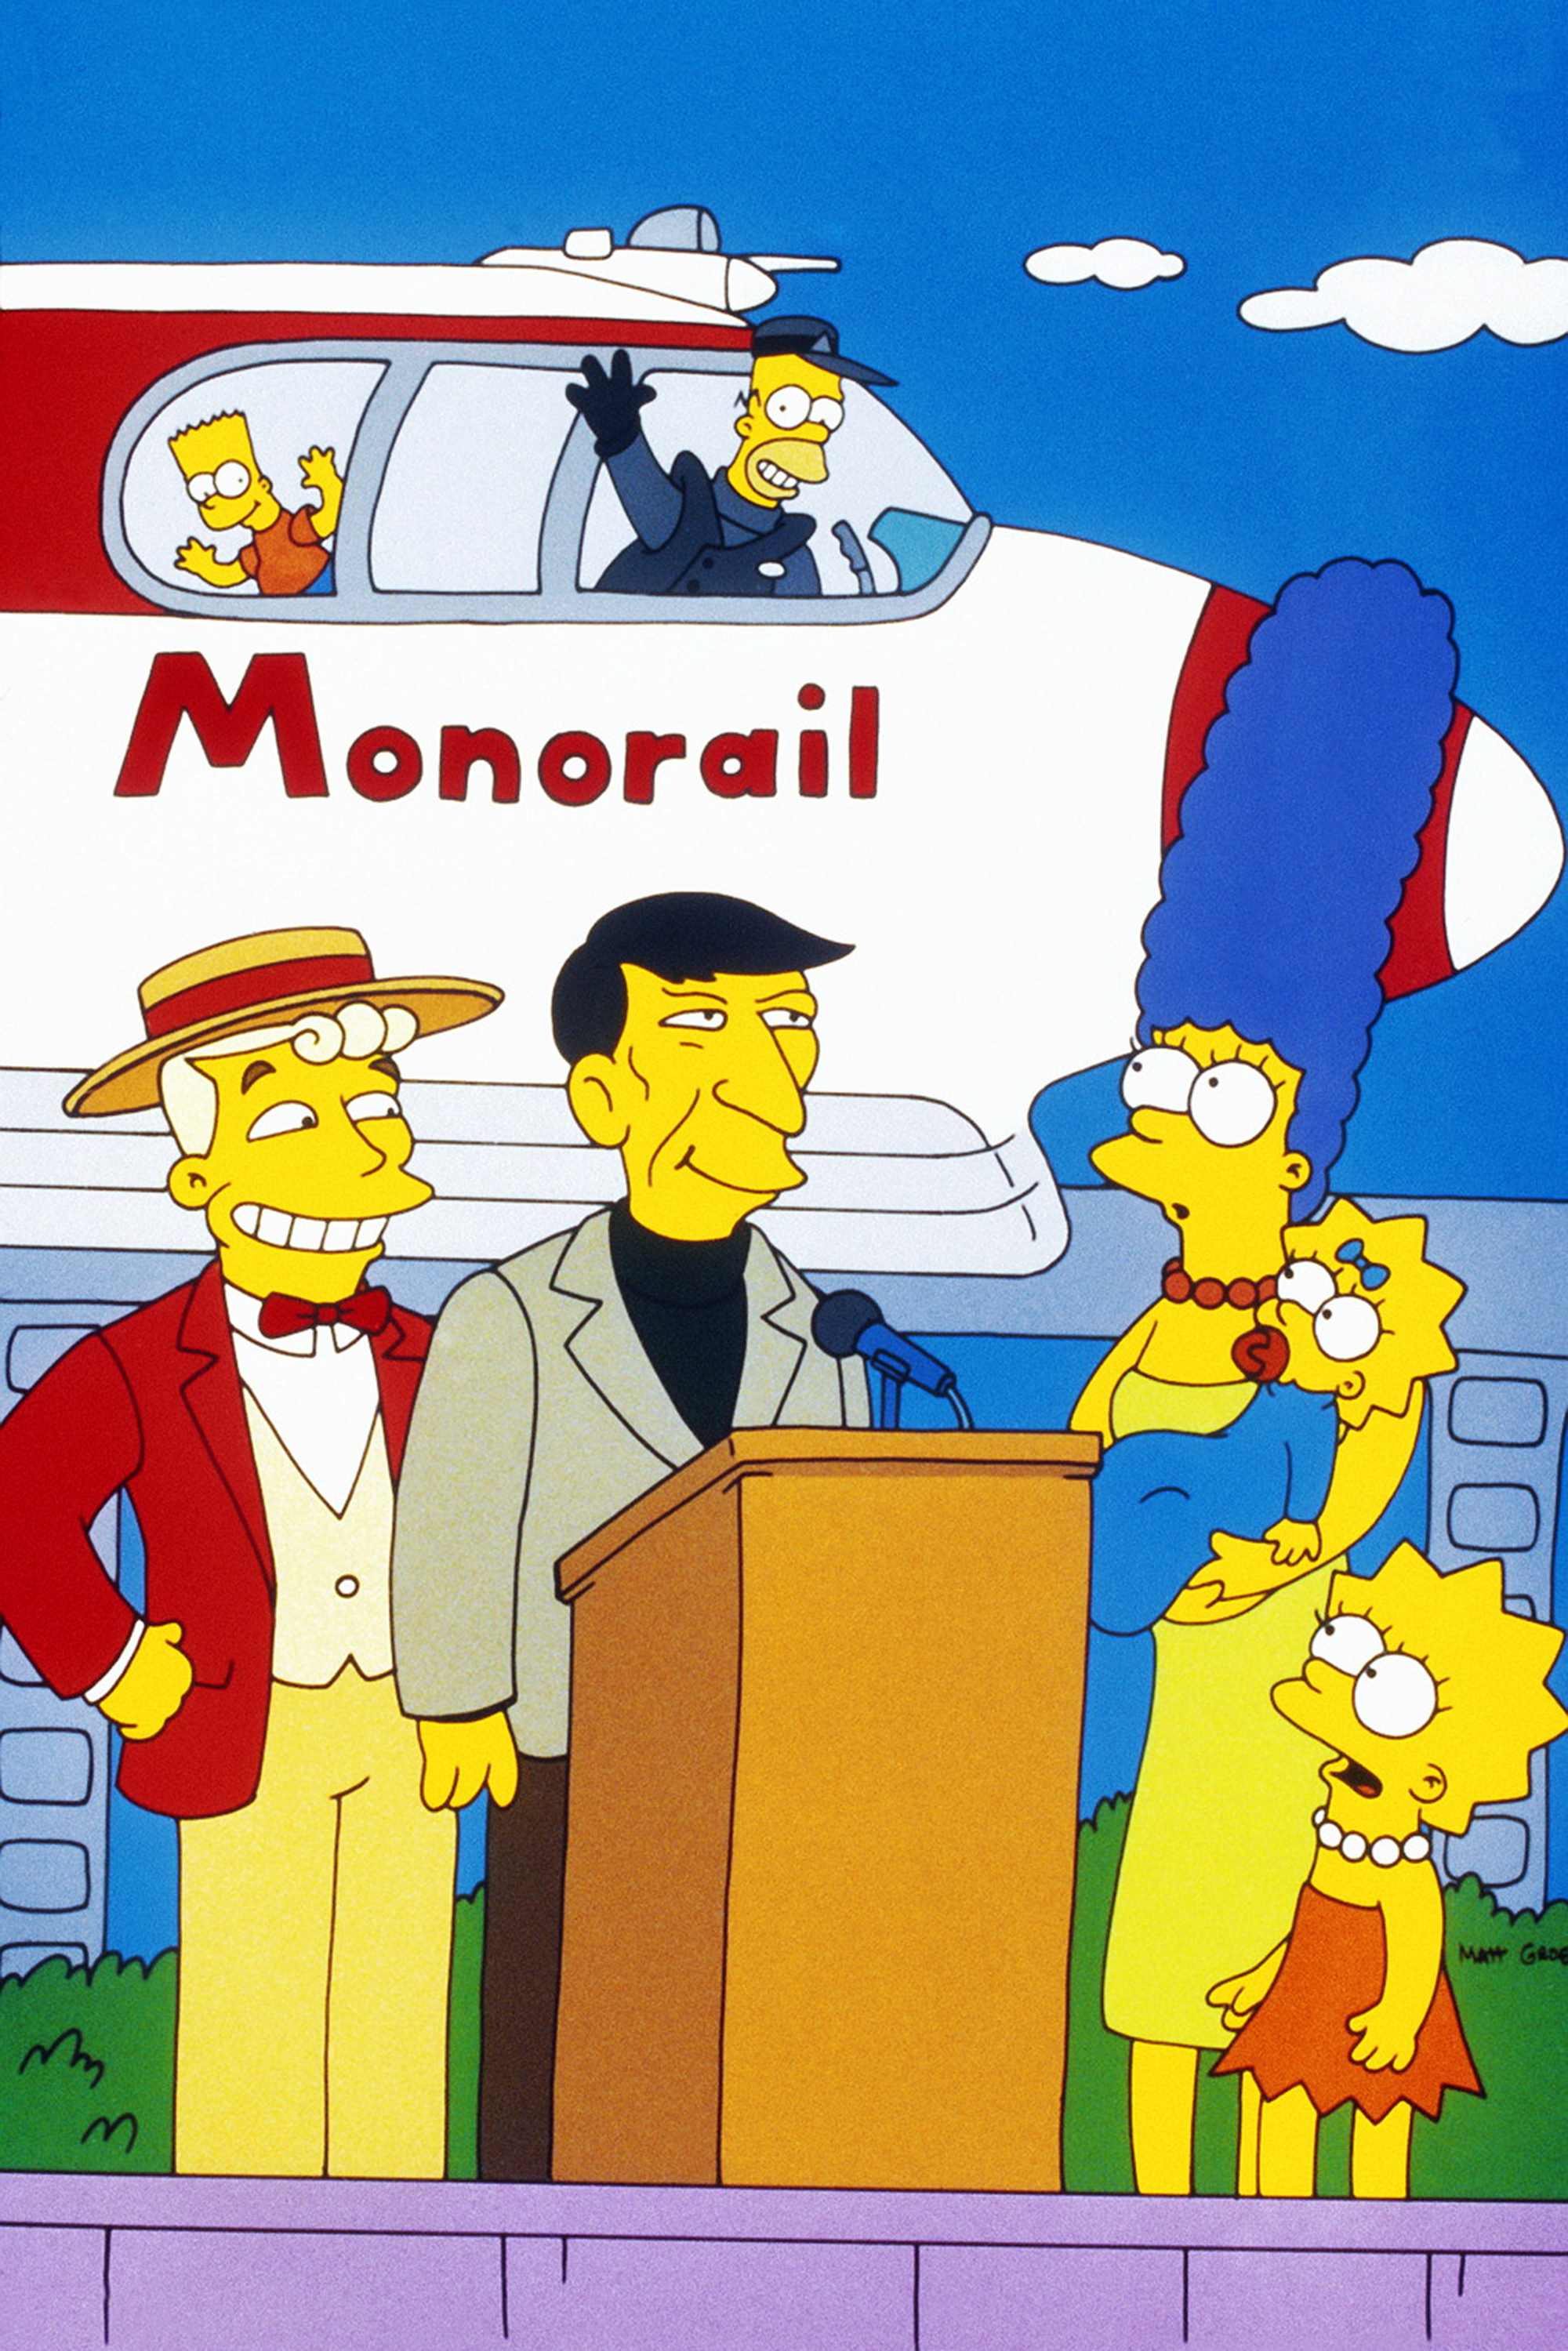 """<b>Leonard Nimoy:</b> Leonard Nimoy made his first cameo as himself in the classic episode """"Marge vs. the Monorail"""" in 1993. Nimoy comes to Springfield as a guest of honor for the maiden voyage of the town's fraudulent monorail. Nimoy also appeared in """"The Springfield Files"""" in 1997 as himself. The 2015 episode """"The Princess Guide"""" was dedicated to his memory."""